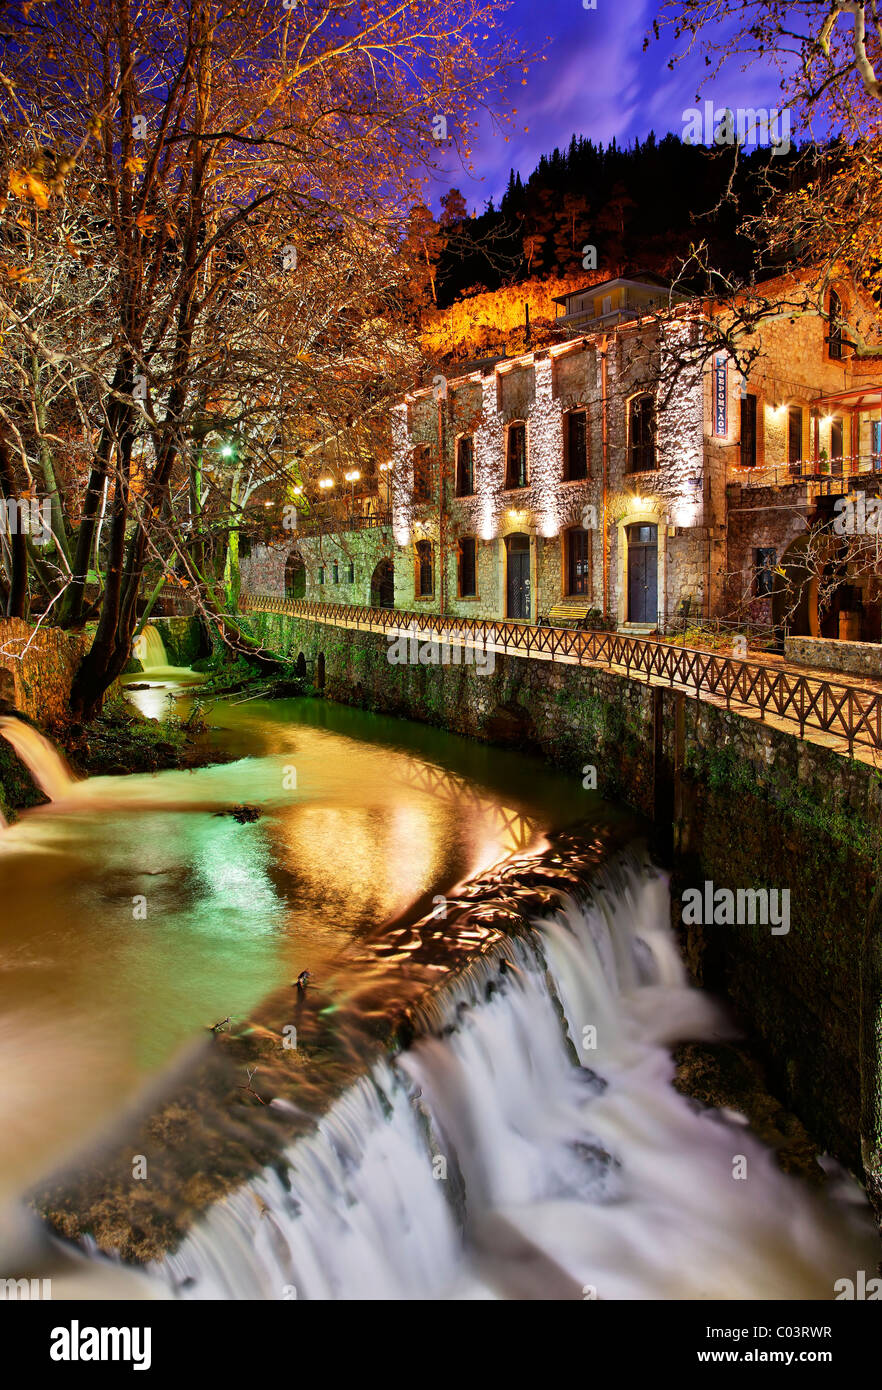 A photo from the Krya Springs, a beautiful place in the heart of Livadia town, Viotia prefecture, Greece - Stock Image